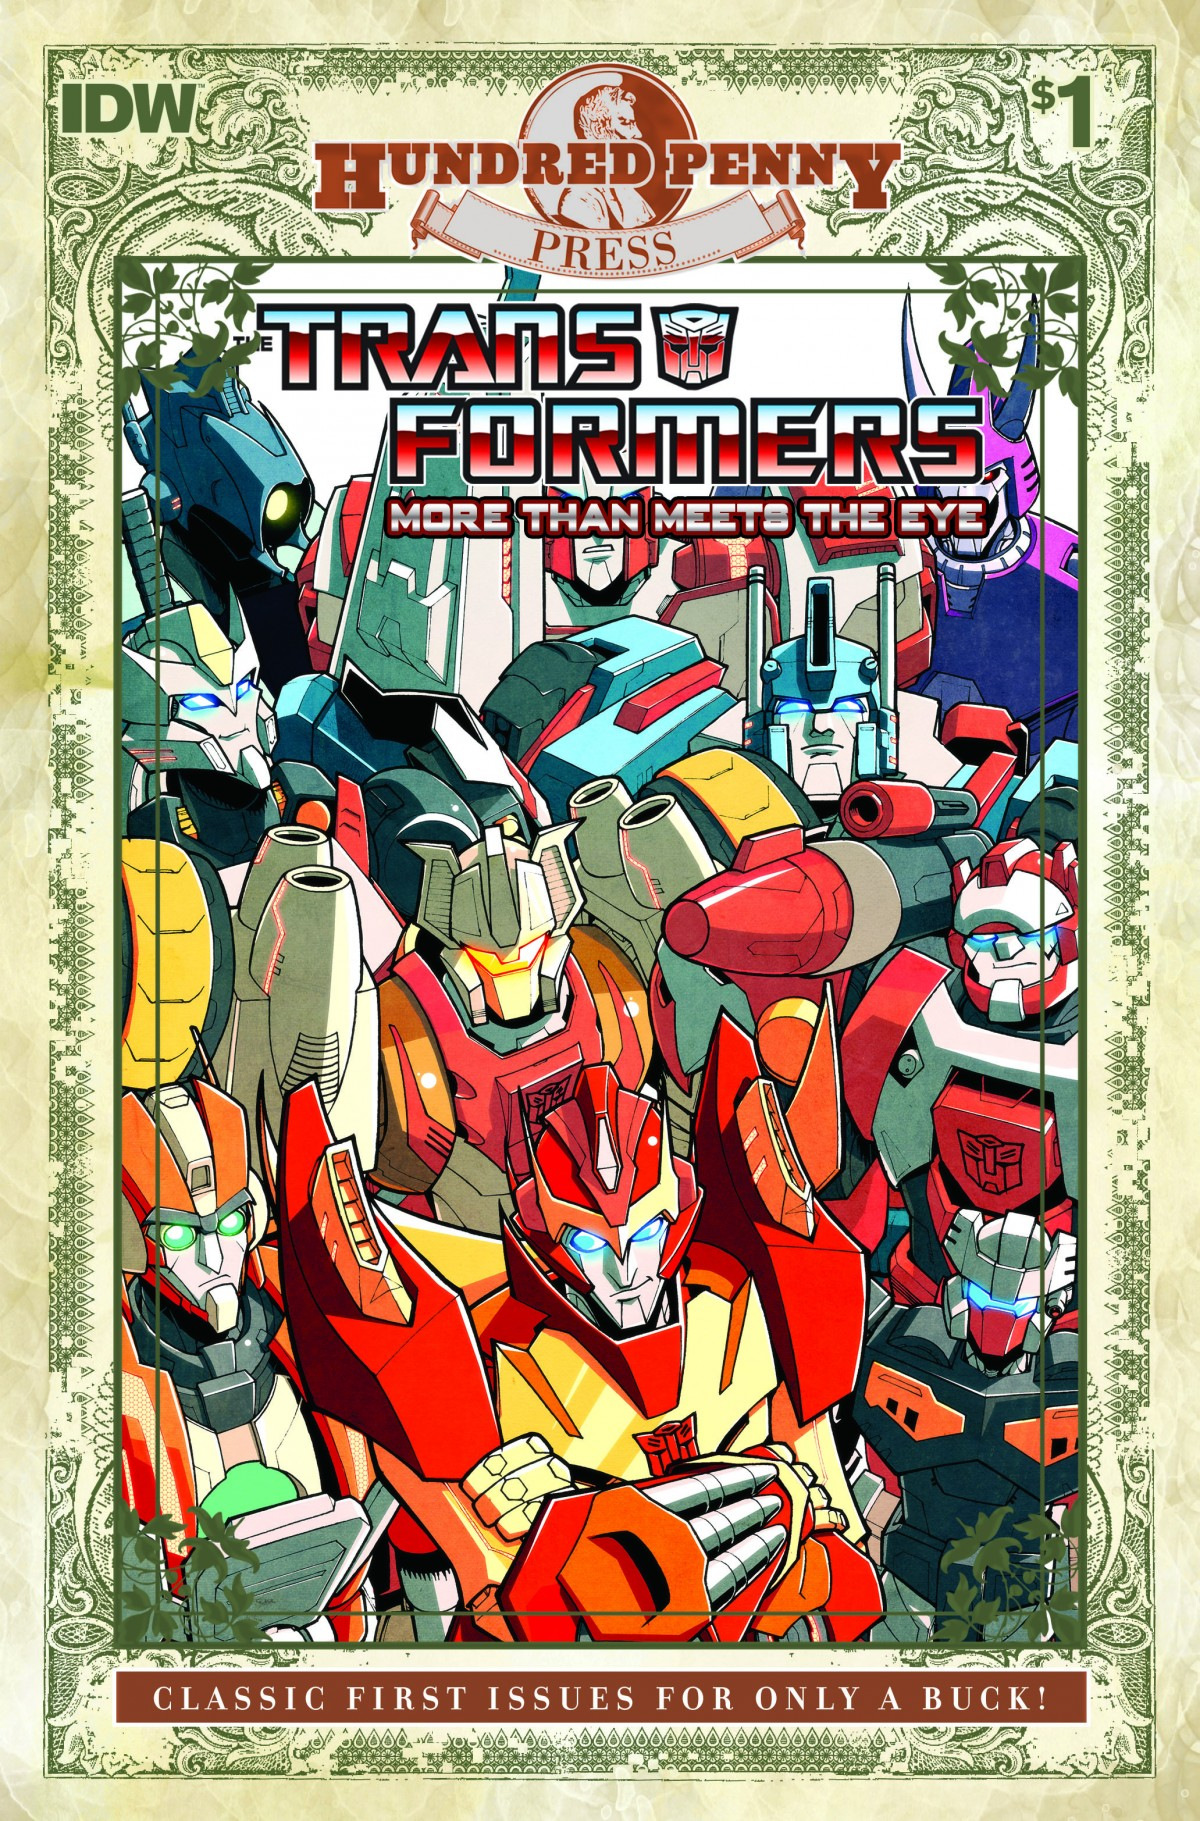 IDW Transformers November 2013 Solicitations - Dark Cybertron, Beast Hunters,